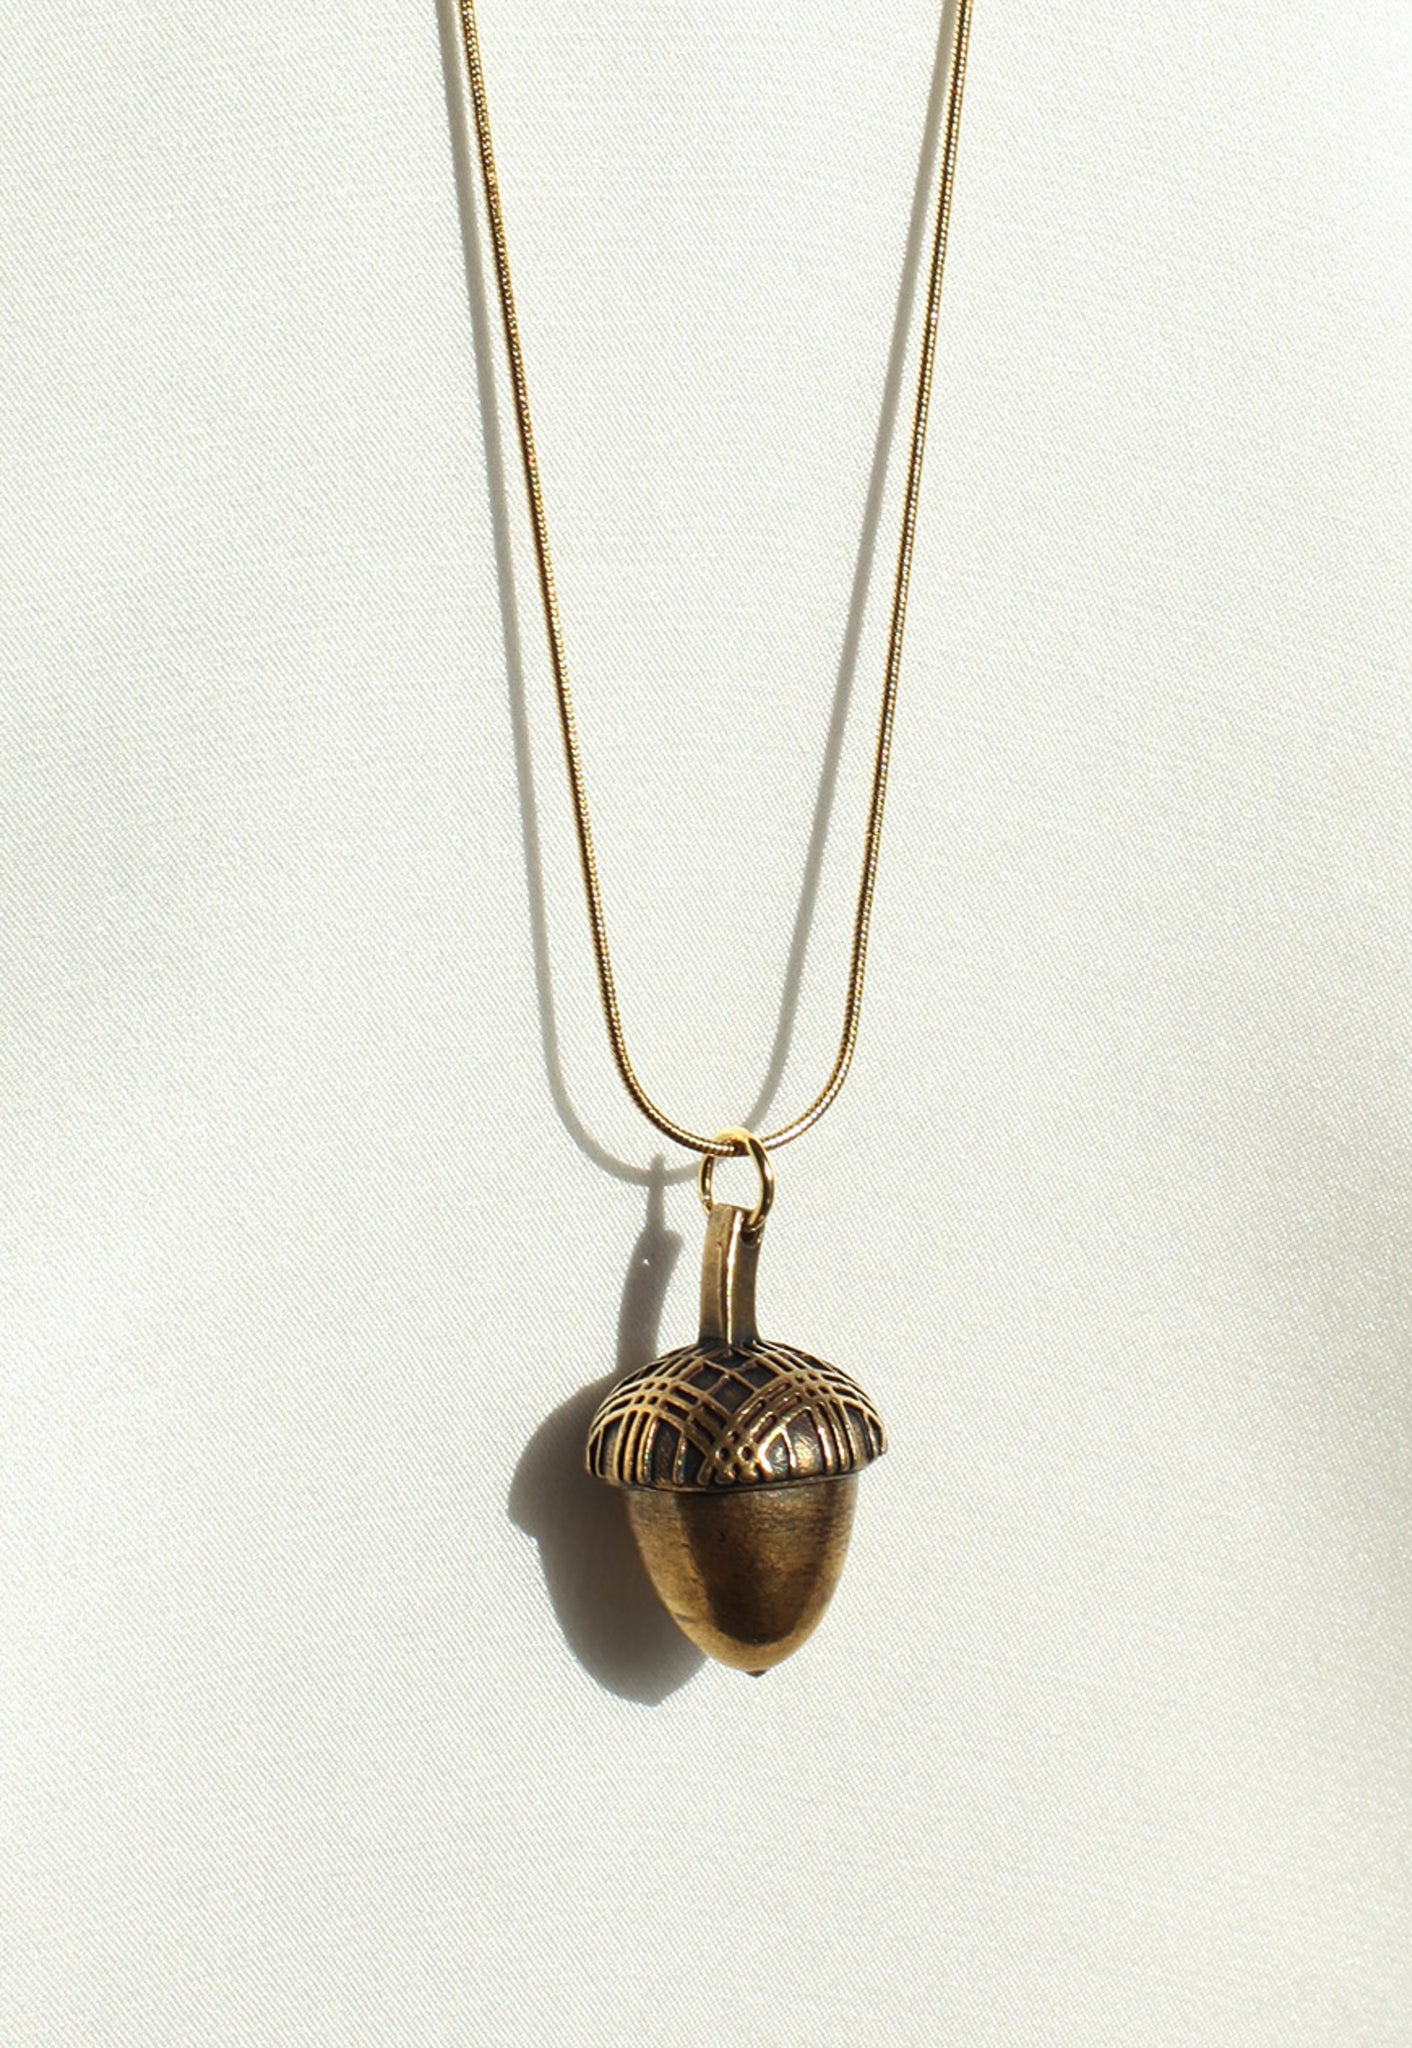 Reworked Burberry Acorn Pendant Necklace (Large)